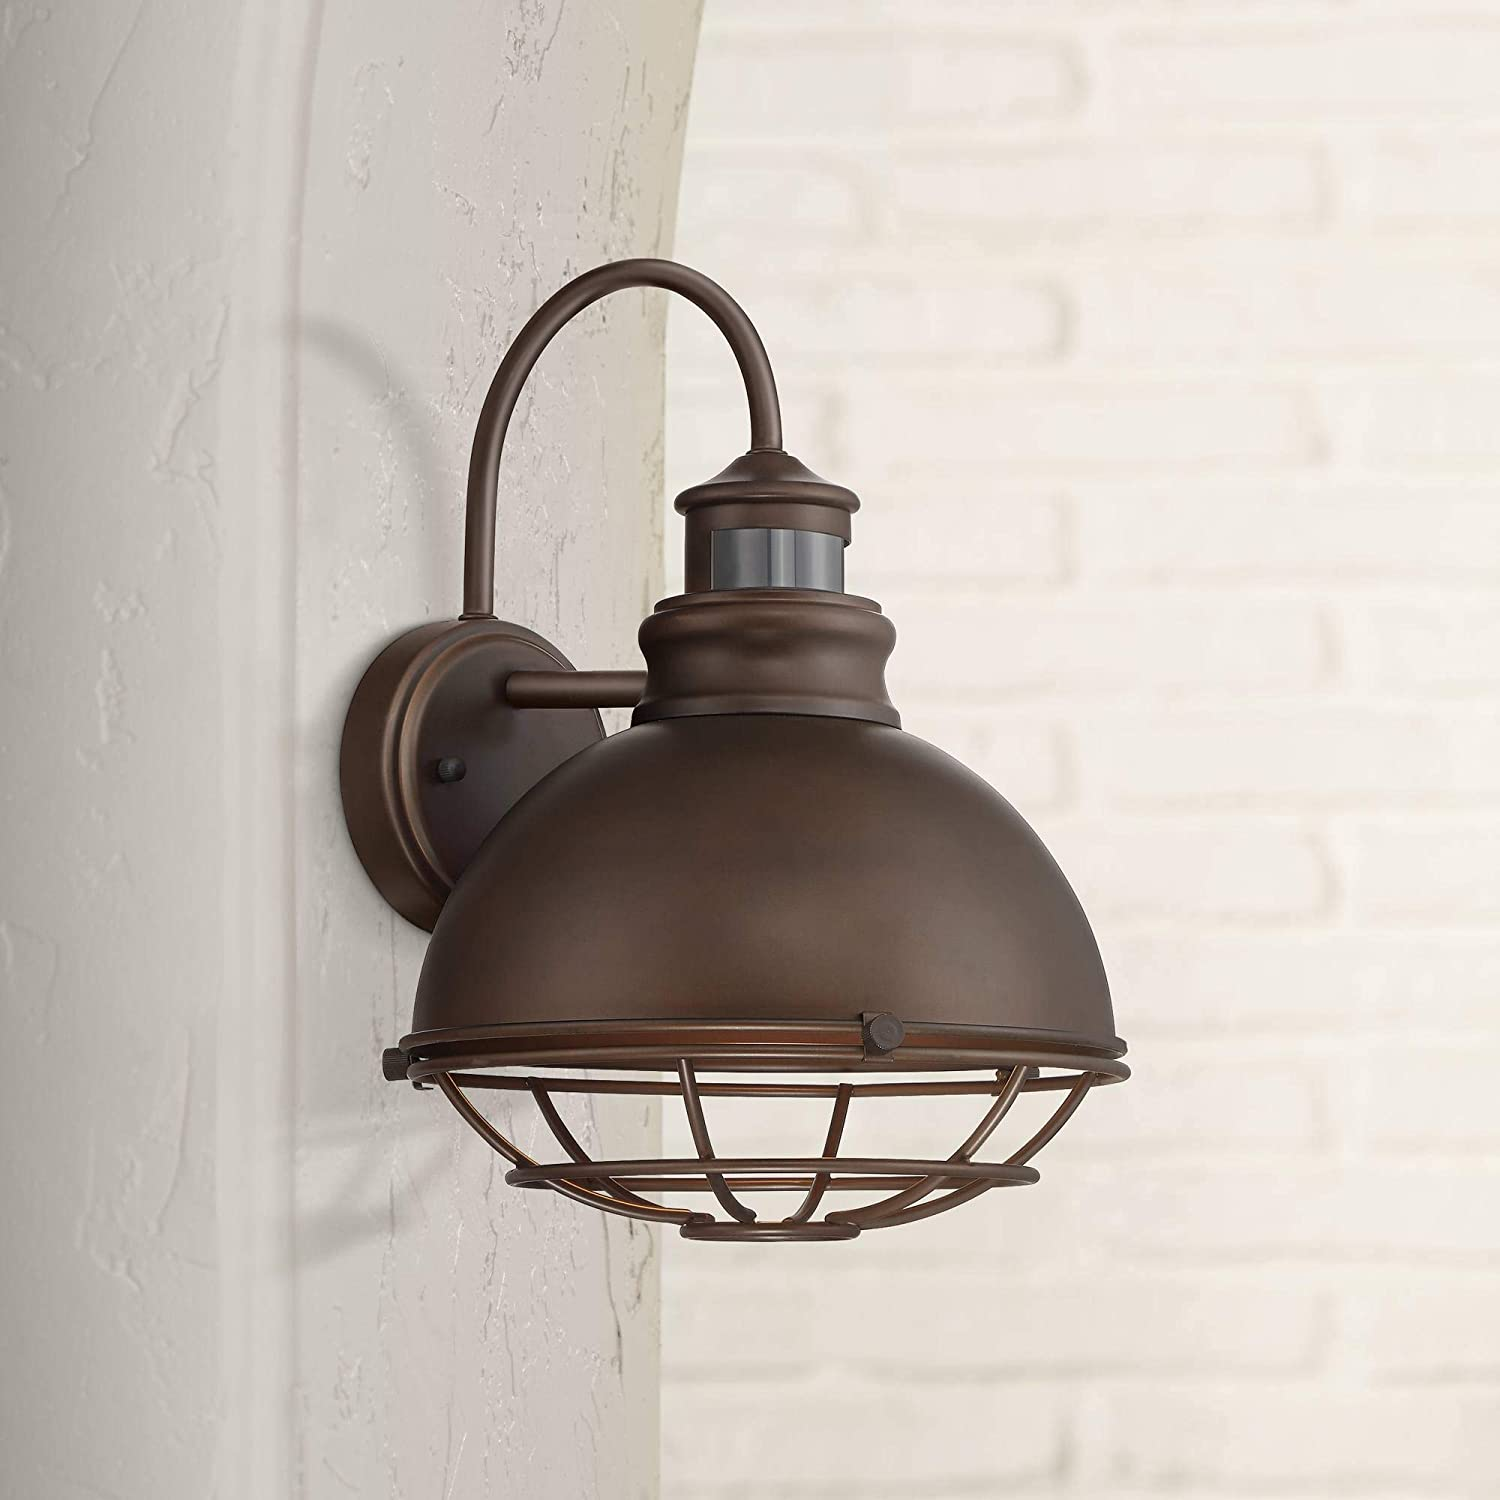 """Norton Industrial Outdoor Wall Light Fixture Urban Barn Oiled Bronze 14"""" Round Cage Motion Sensor for House Porch Patio"""